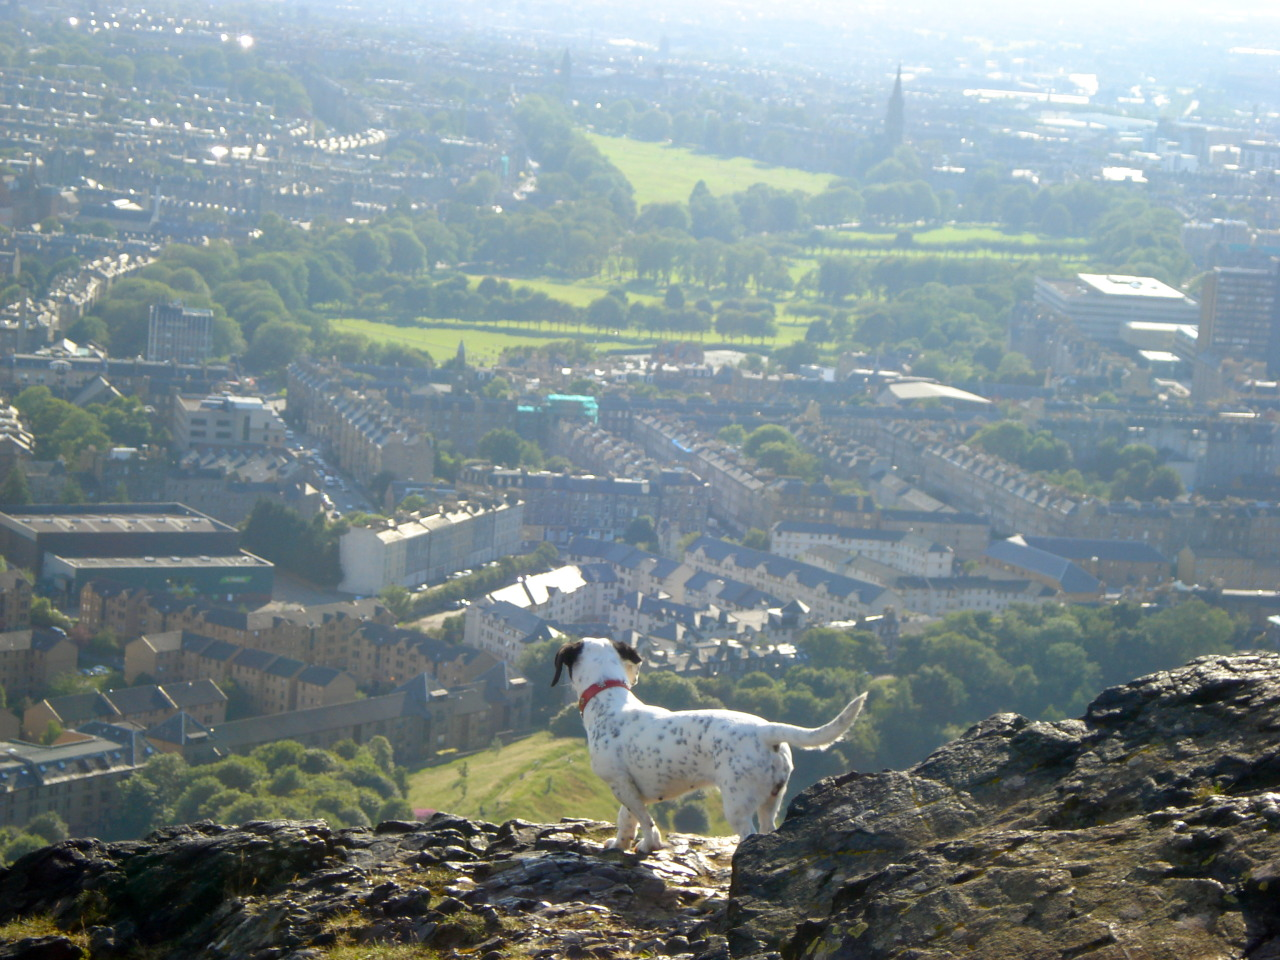 Edinburgh, Scotland on Arthur's seat!